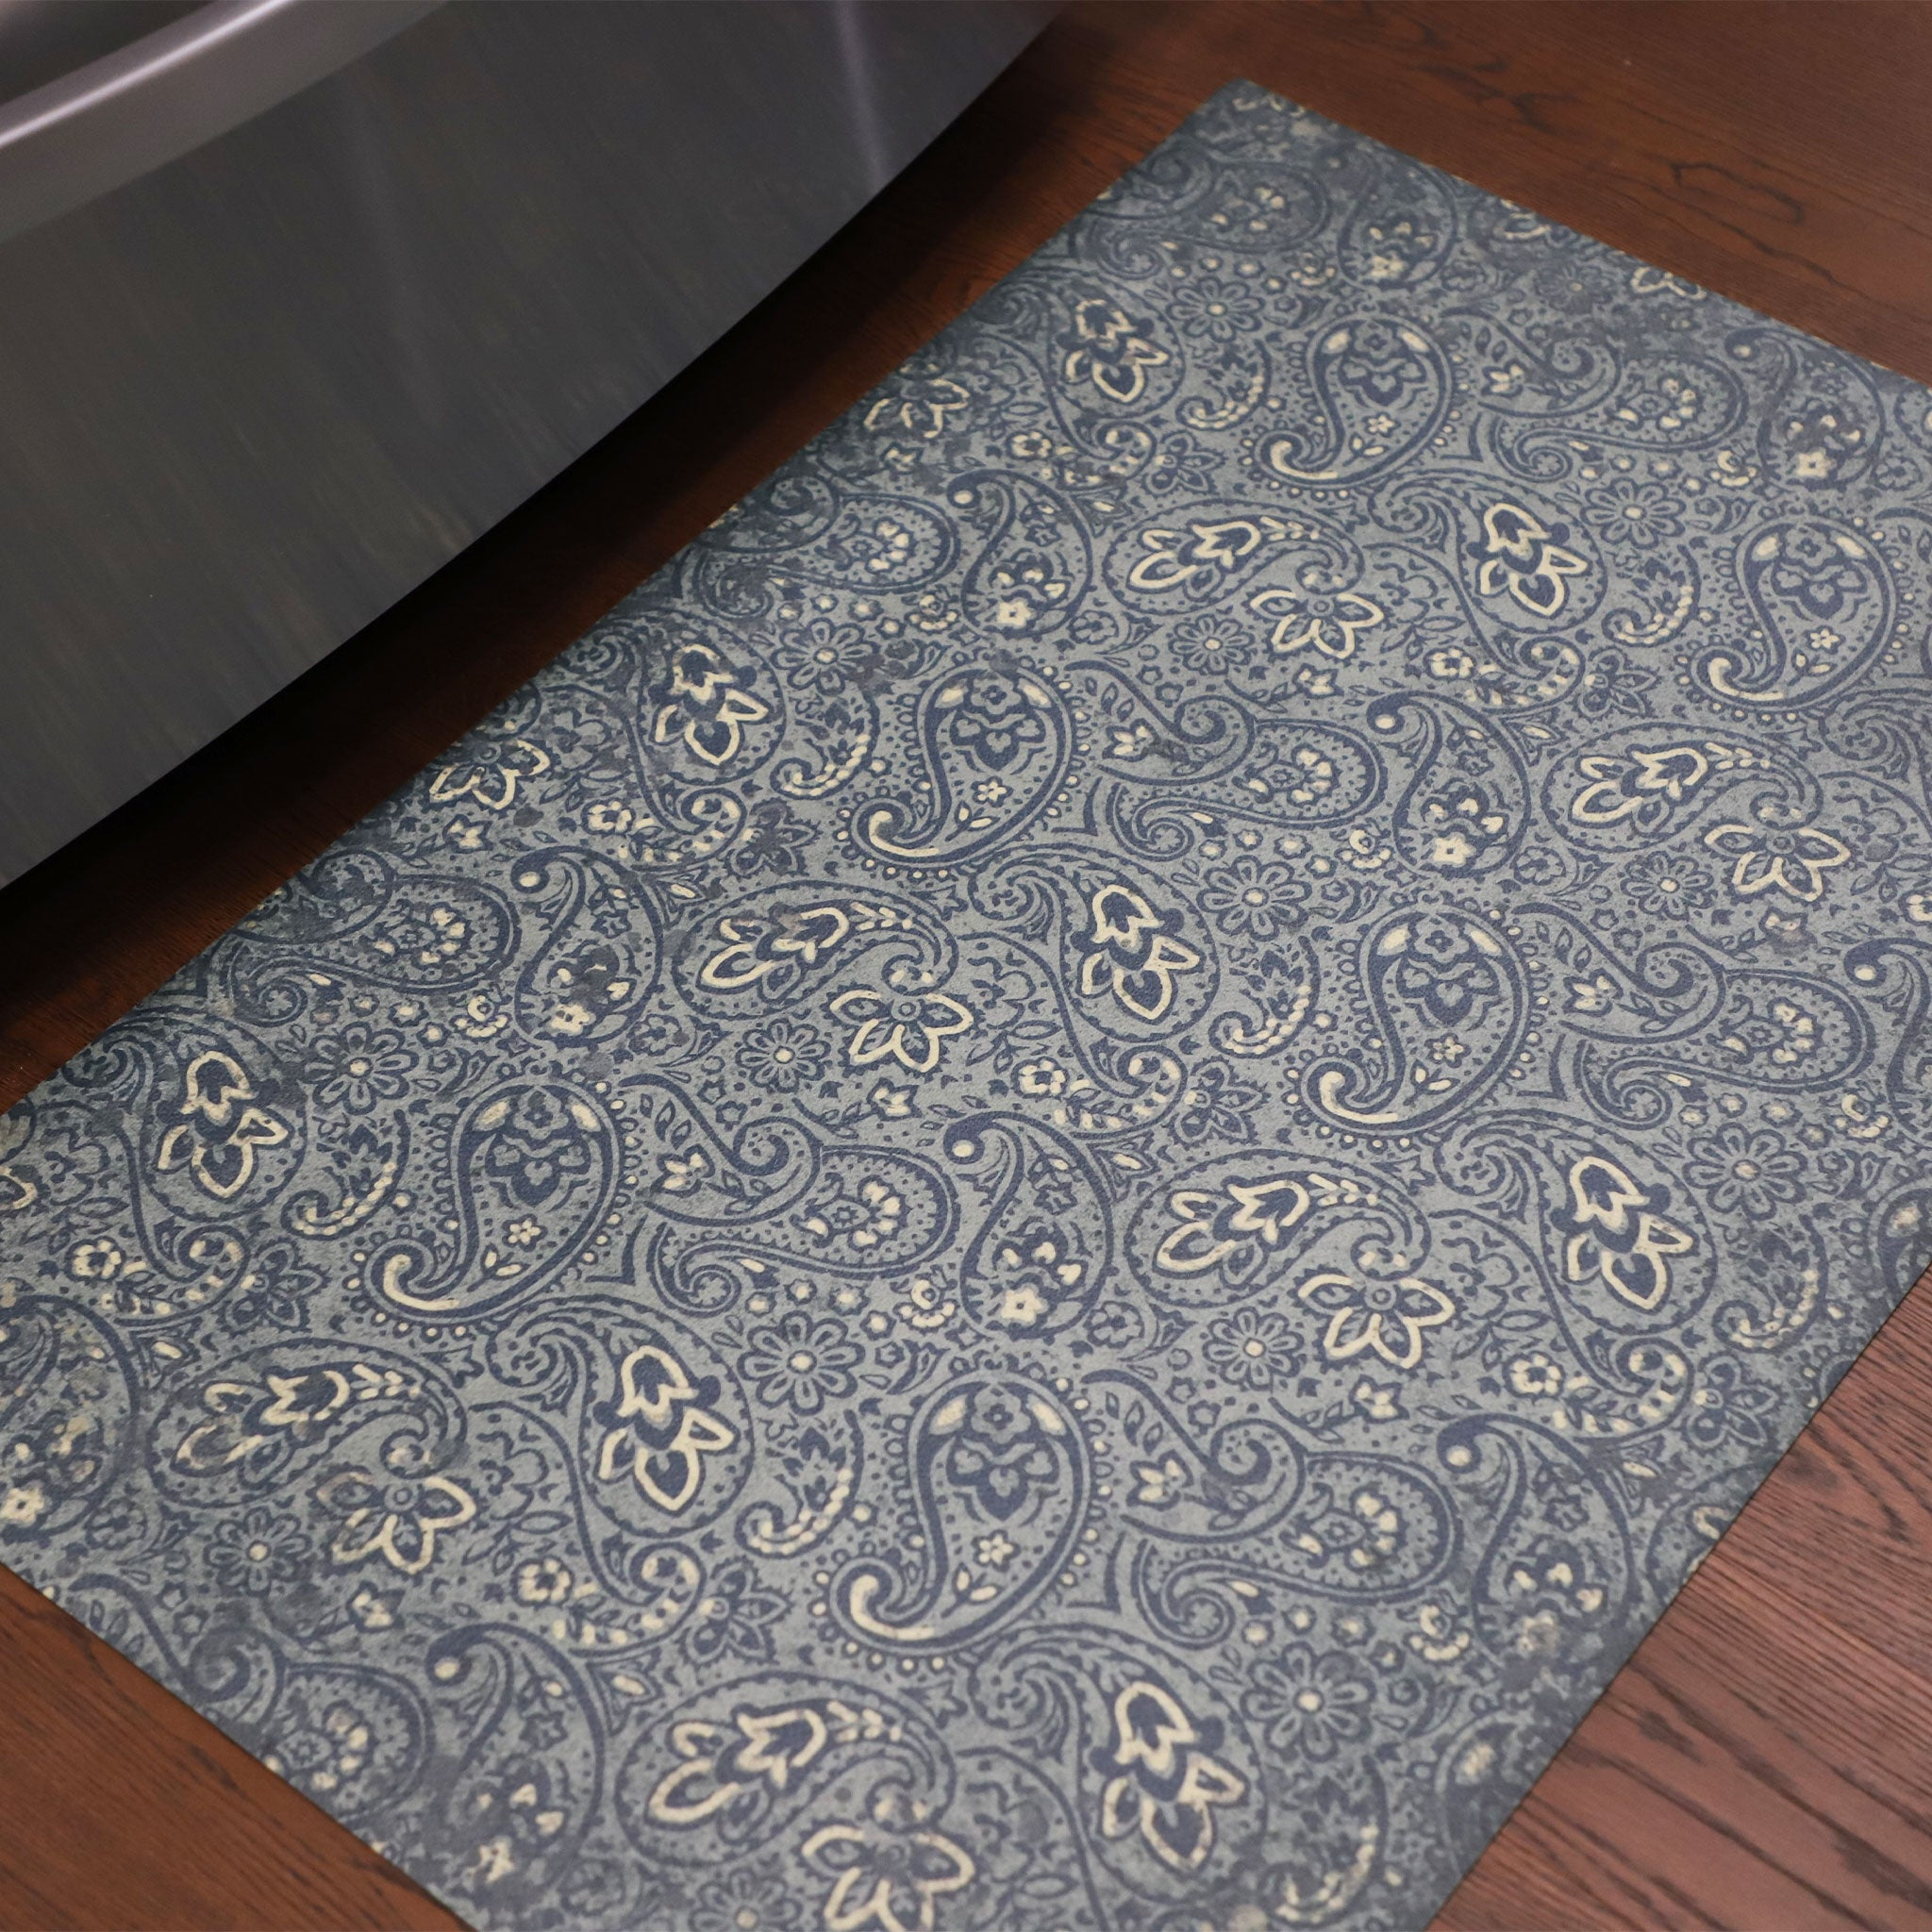 2020 FlorArt Paisley Park - Low Profile Decorative Floor Mat - Made in USA